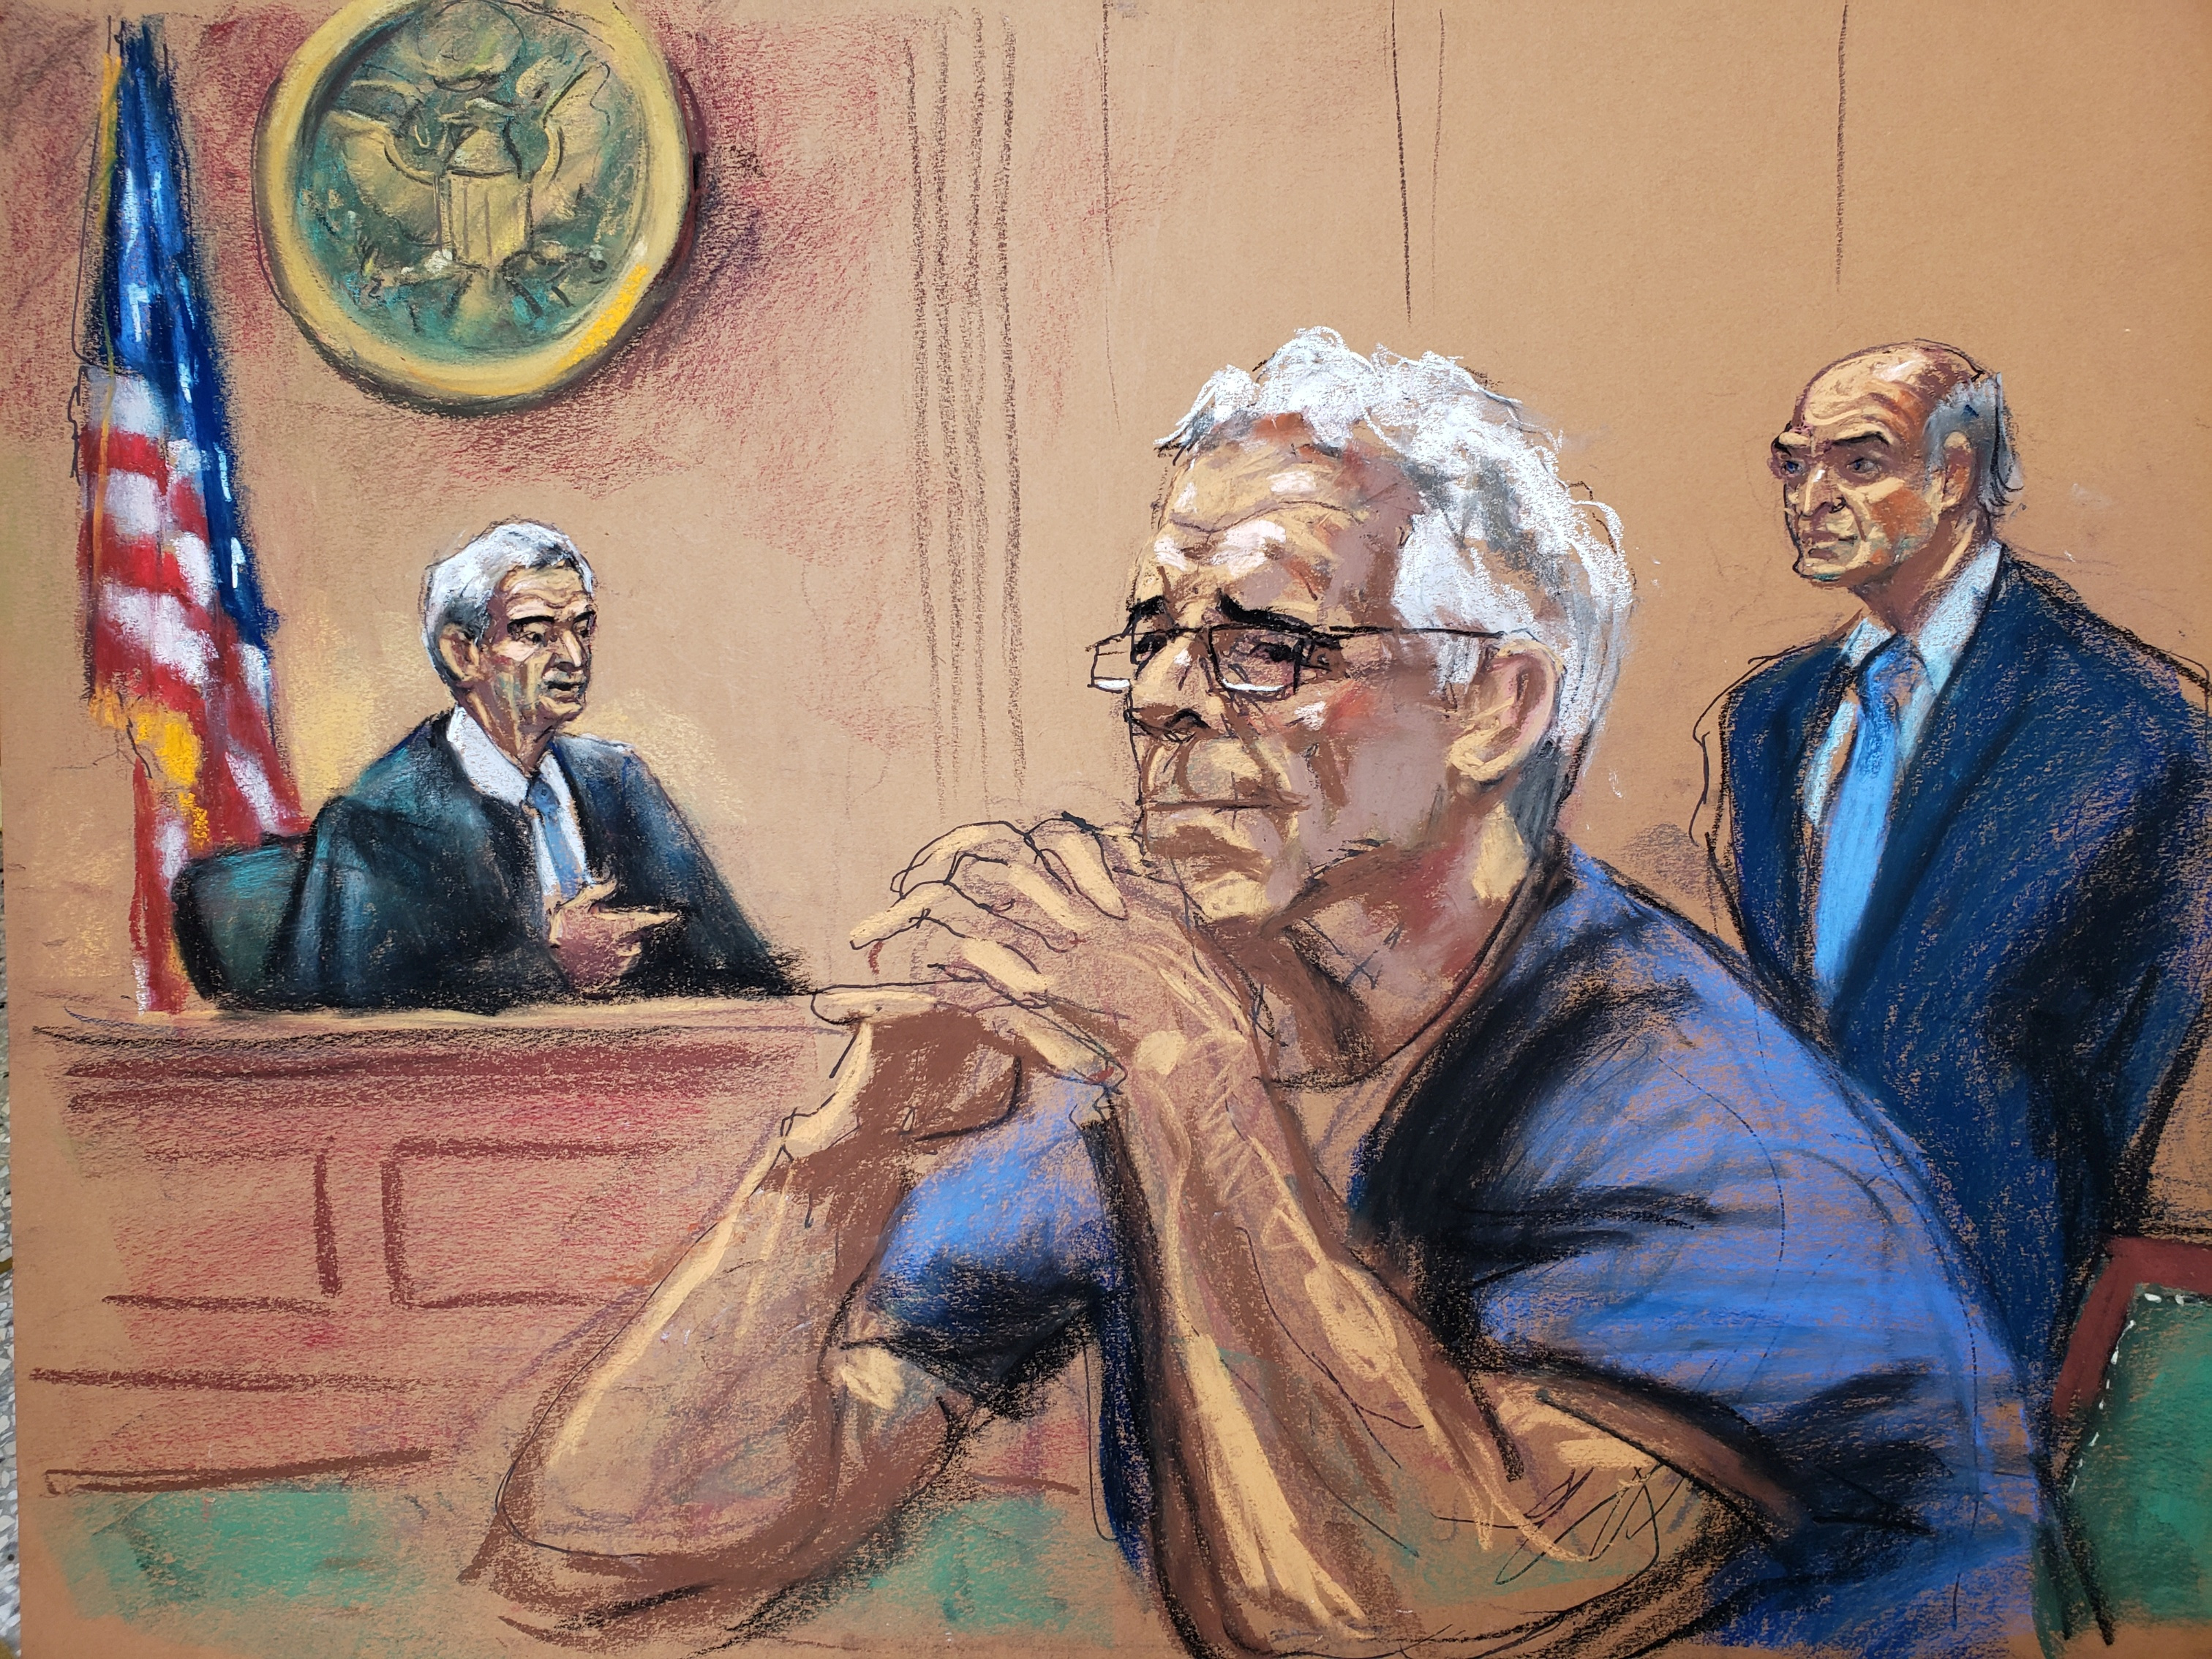 Unsealed Epstein Docs Exposed Allegations Against Rich and Powerful